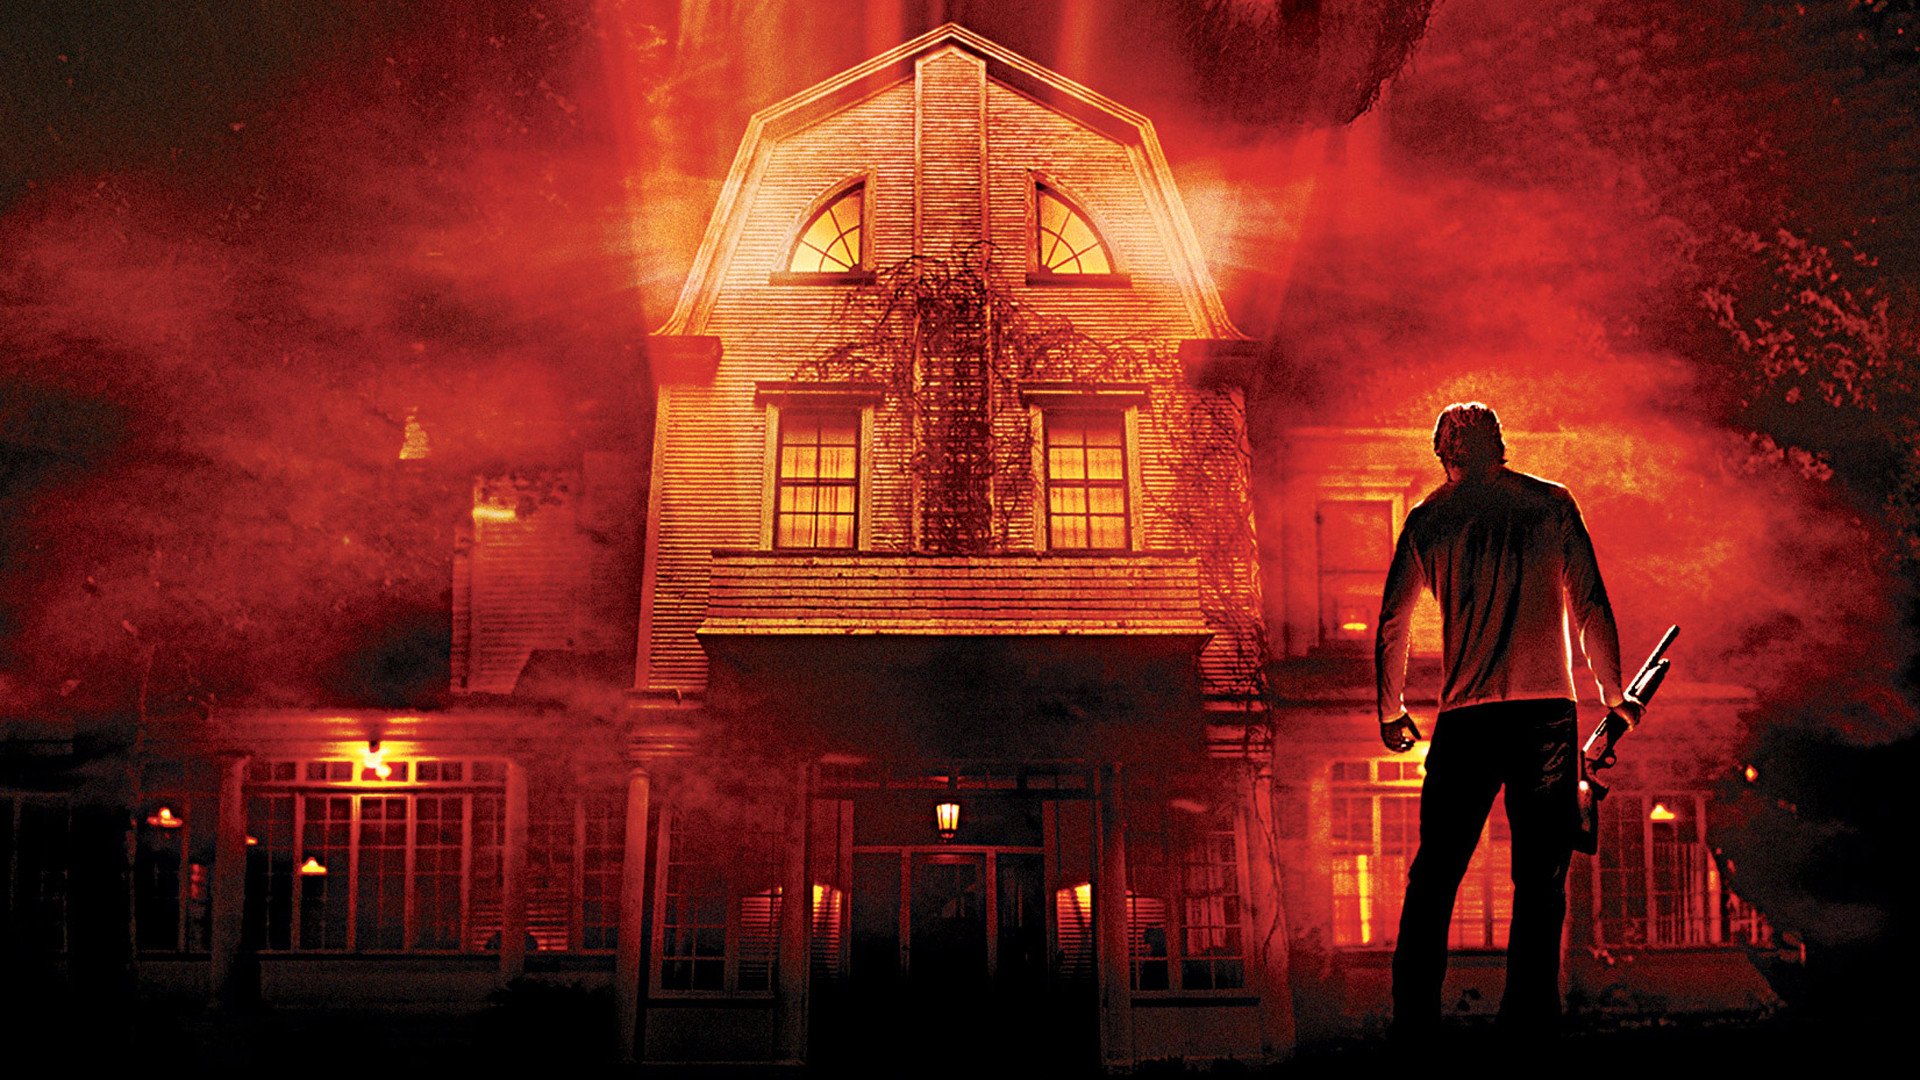 ... to use the movie the amityville horror 1979 for my film analysis one